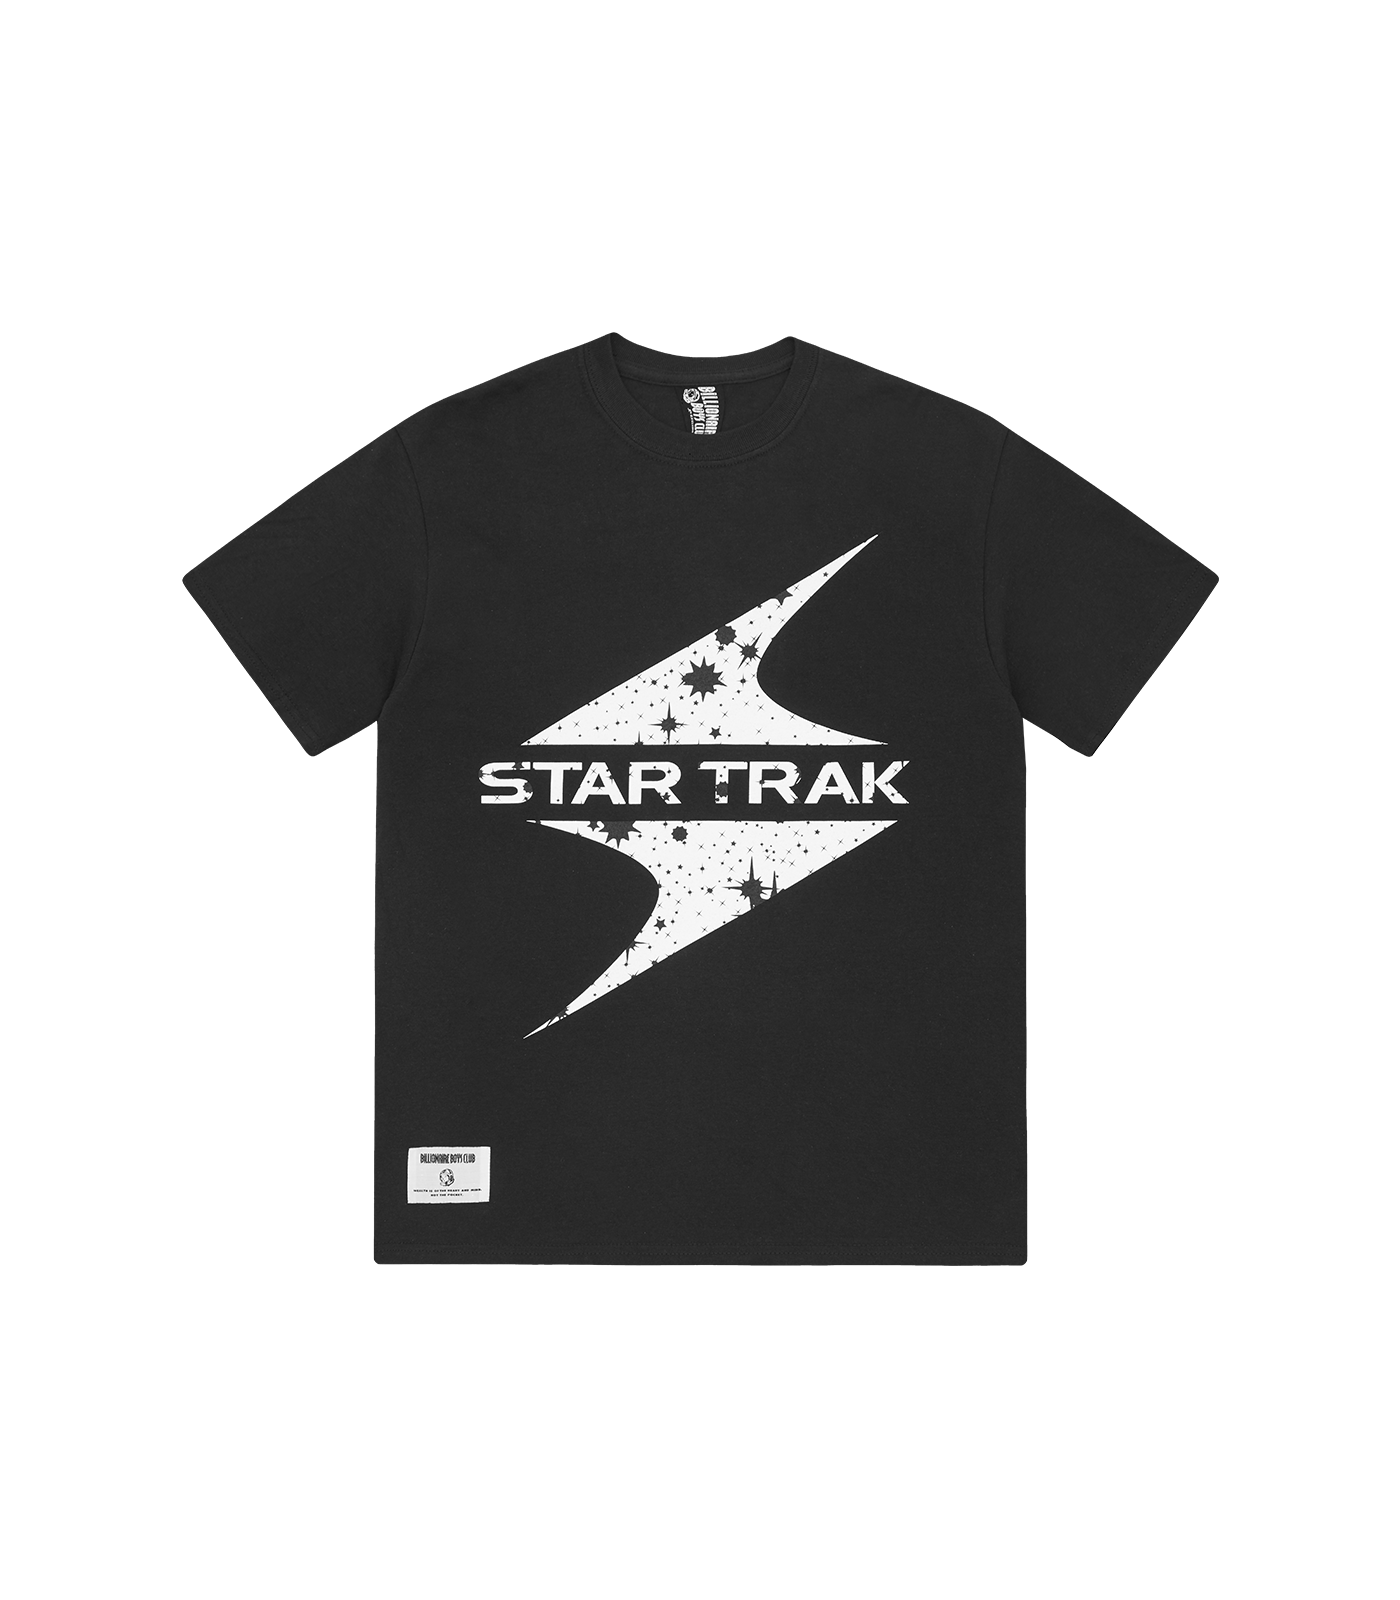 STARTRAK STARFIELD T-SHIRT - BLACK